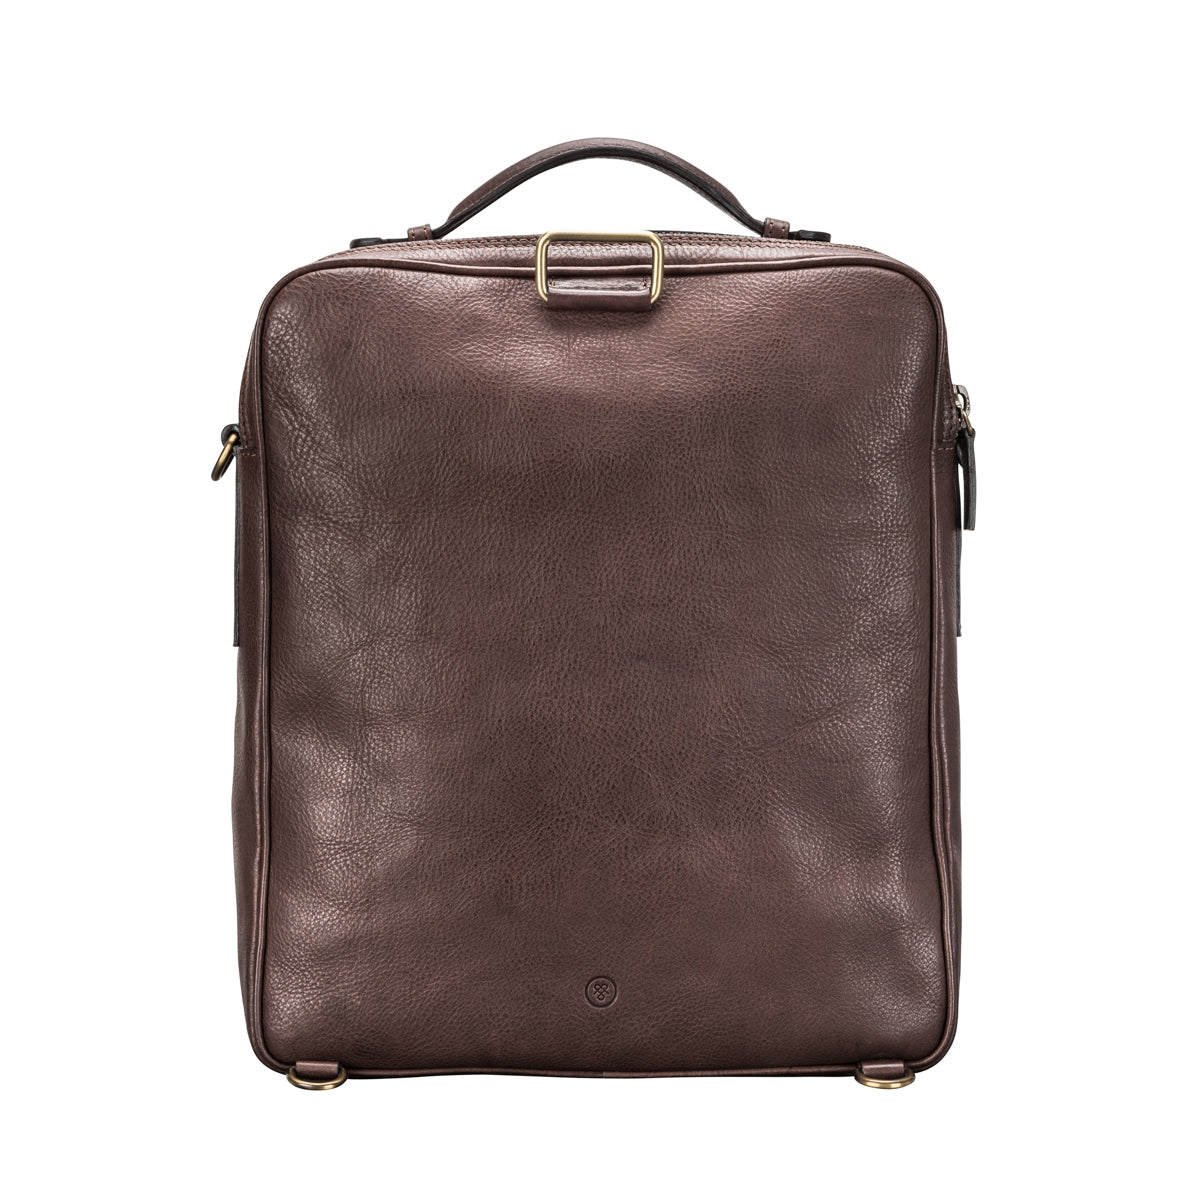 Image 4 of the 'SantinoL' Men's Brown Leather Convertible Backpack Shoulder